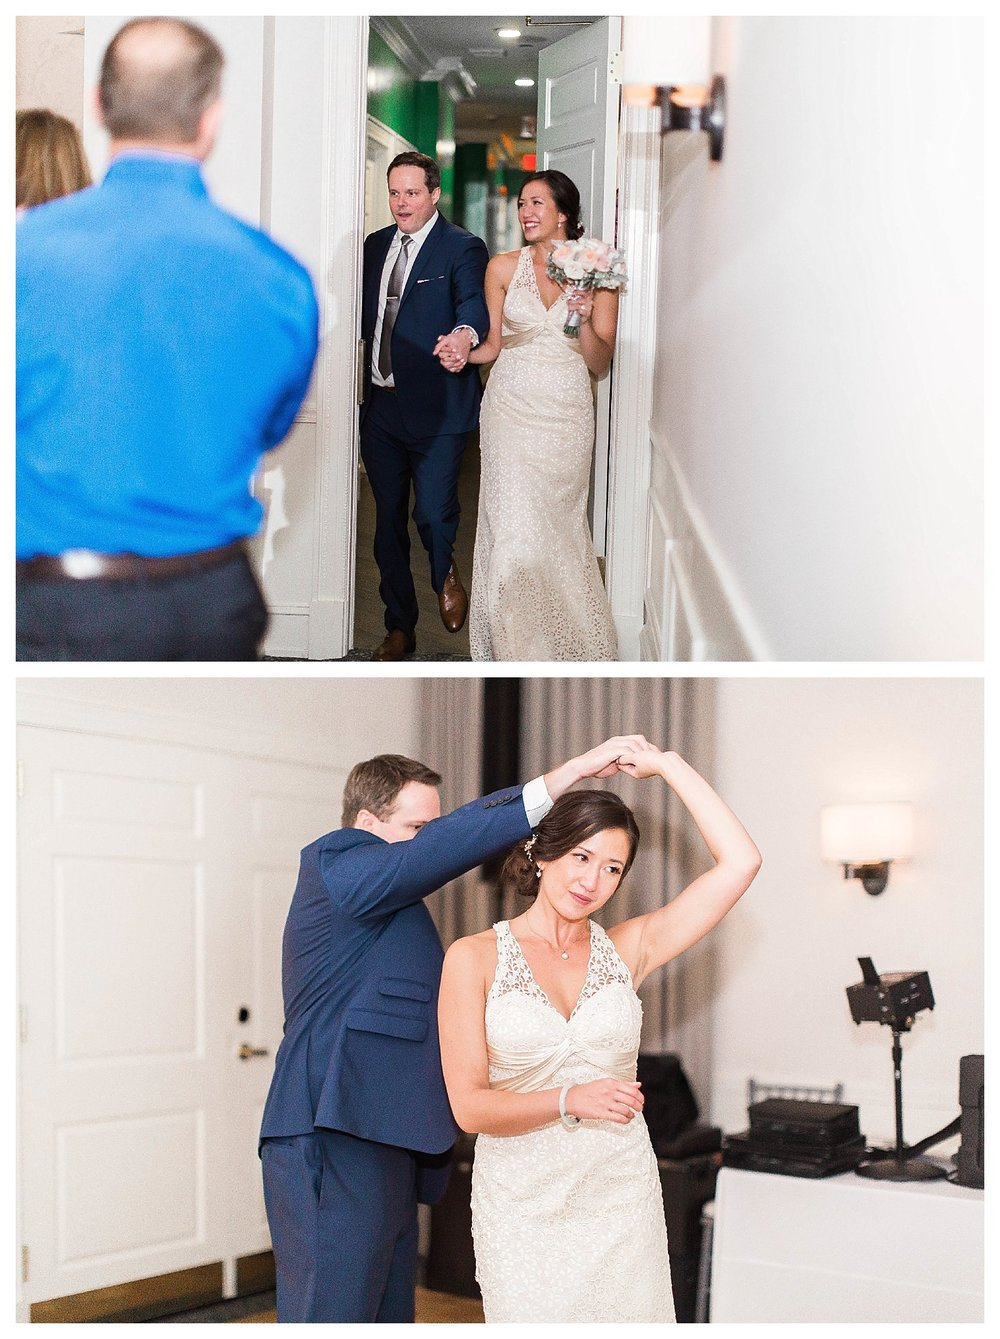 Morrison House Wedding Alexandria Virginia | Andrea Rodway Photo